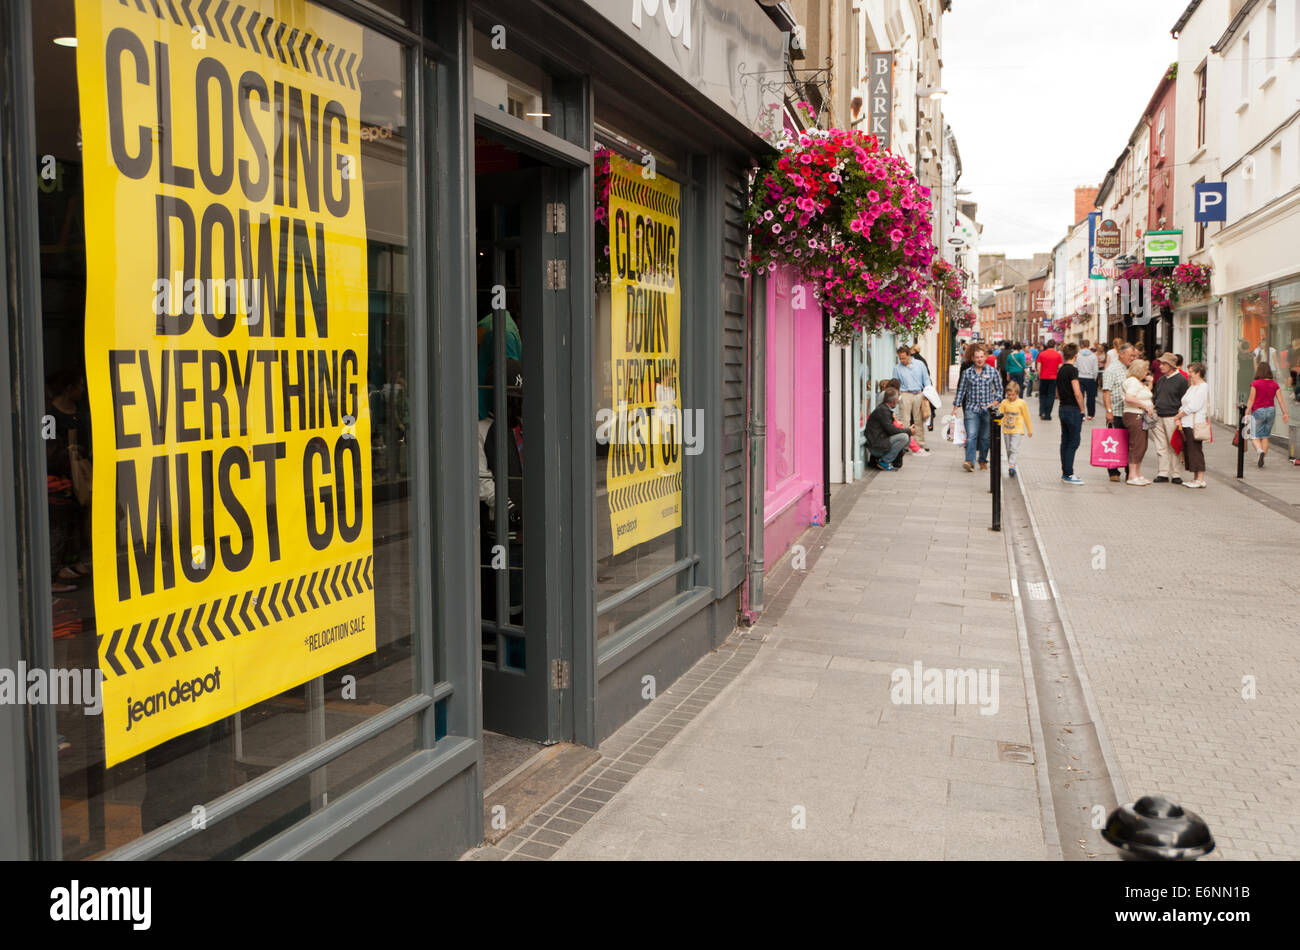 Closing Down Sale Signs in High Street Shop Windows Wexford Town Ireland - Stock Image